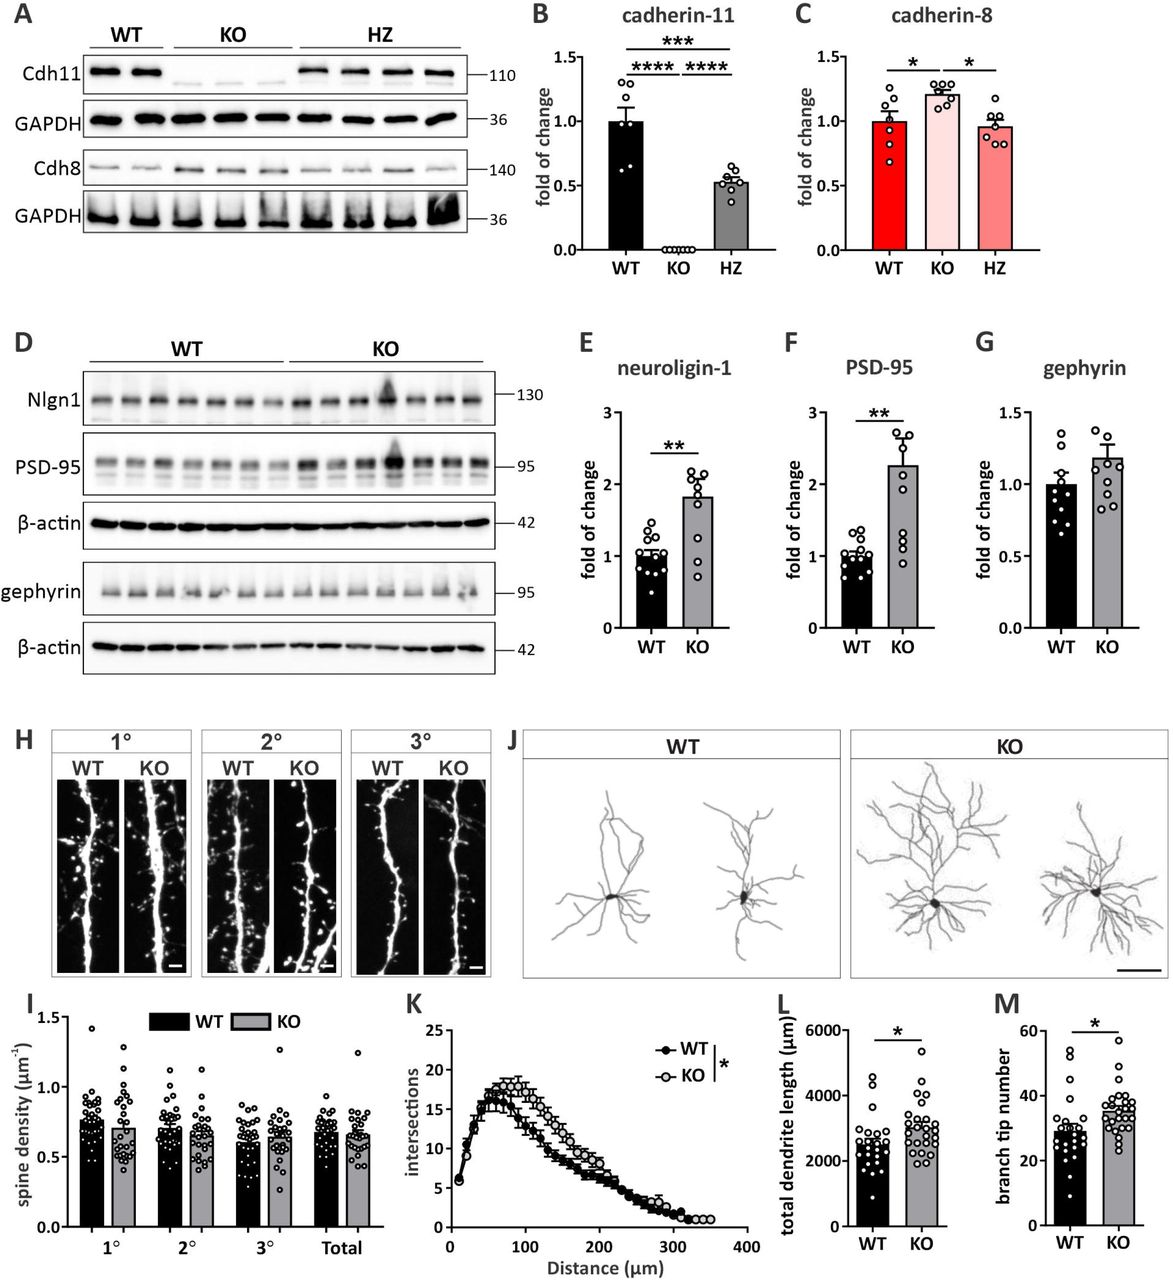 Elevated cadherin-8 expression in Cdh11 -/- mice is accompanied by an increase of excitatory synaptic proteins and dendrite complexity. (A) Western blot analysis of the expression levels of cadherin-11 and cadherin-8 in P7 Cdh11 wild-type (WT), heterozygous (HZ) and knockout (KO) mouse brains. Cadherin-11 expression is not detectable in Cdh11 KO brains. Cadherin signals were normalized to GAPDH. Quantification of the expression of (B) cadherin-11 and (C) cadherin-8 in Cdh11 WT, HZ and KO brains. Cdh11: **** p